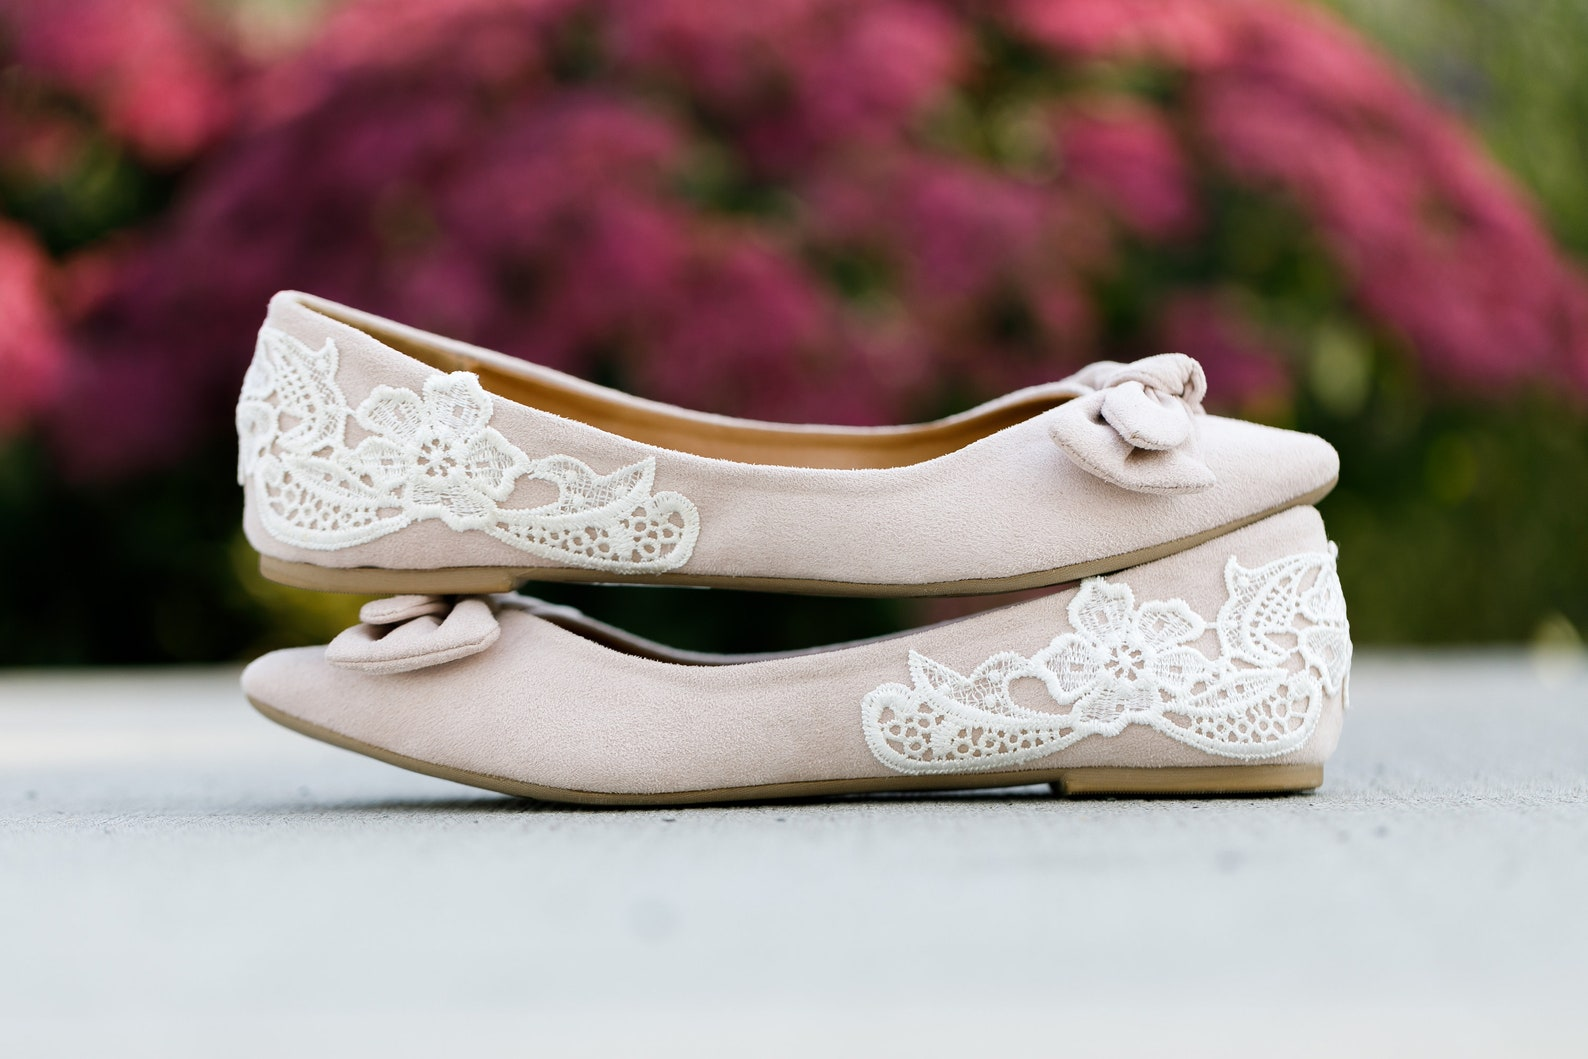 nude wedding shoes,ballet flats,bridal flats,gift,wedding flats,bridesmaid,bridal shoes with bow,flat wedding shoe,cute flat wit